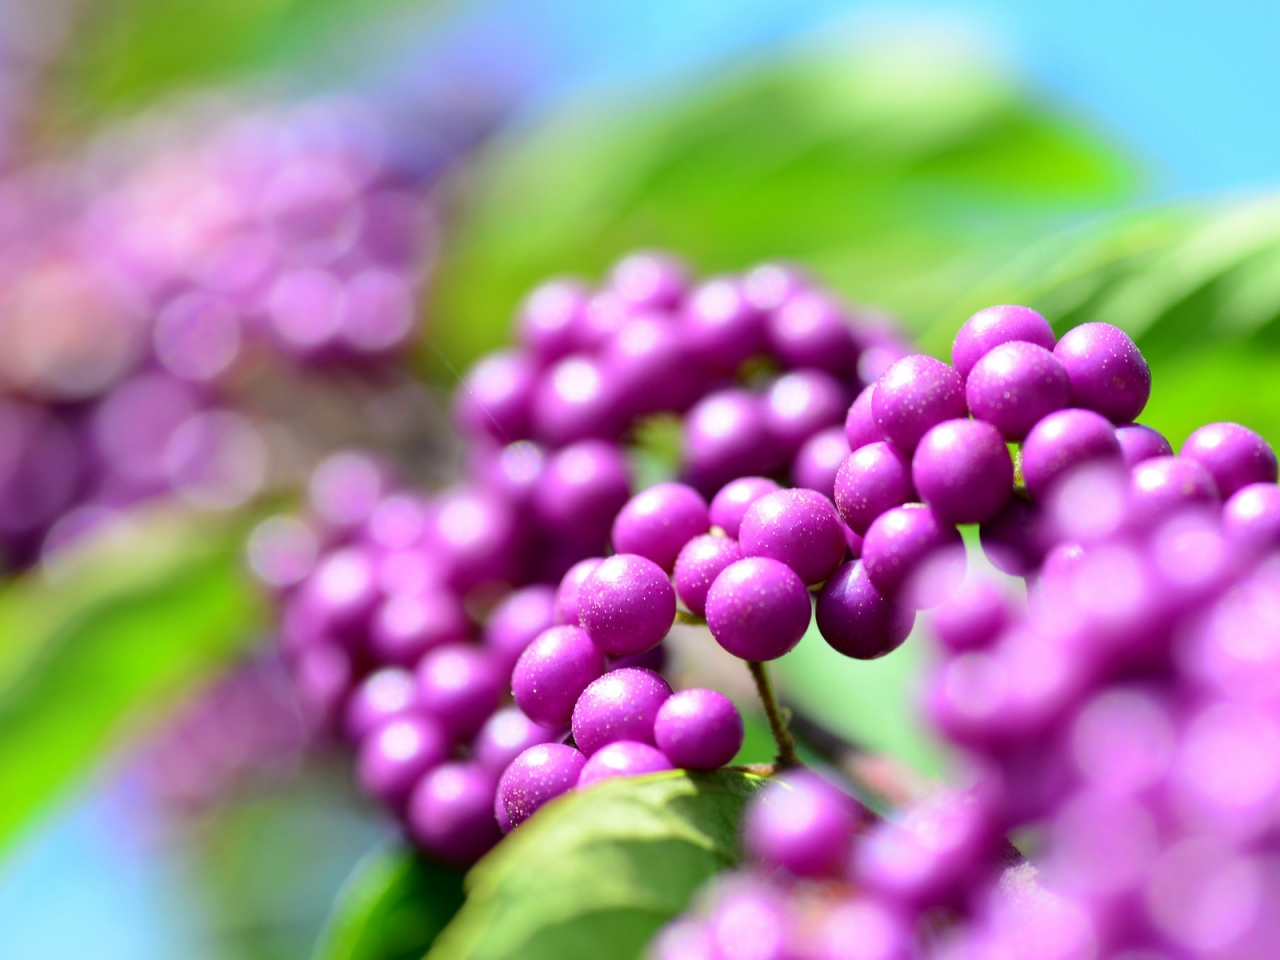 Callicarpa Berries for 1280 x 960 resolution